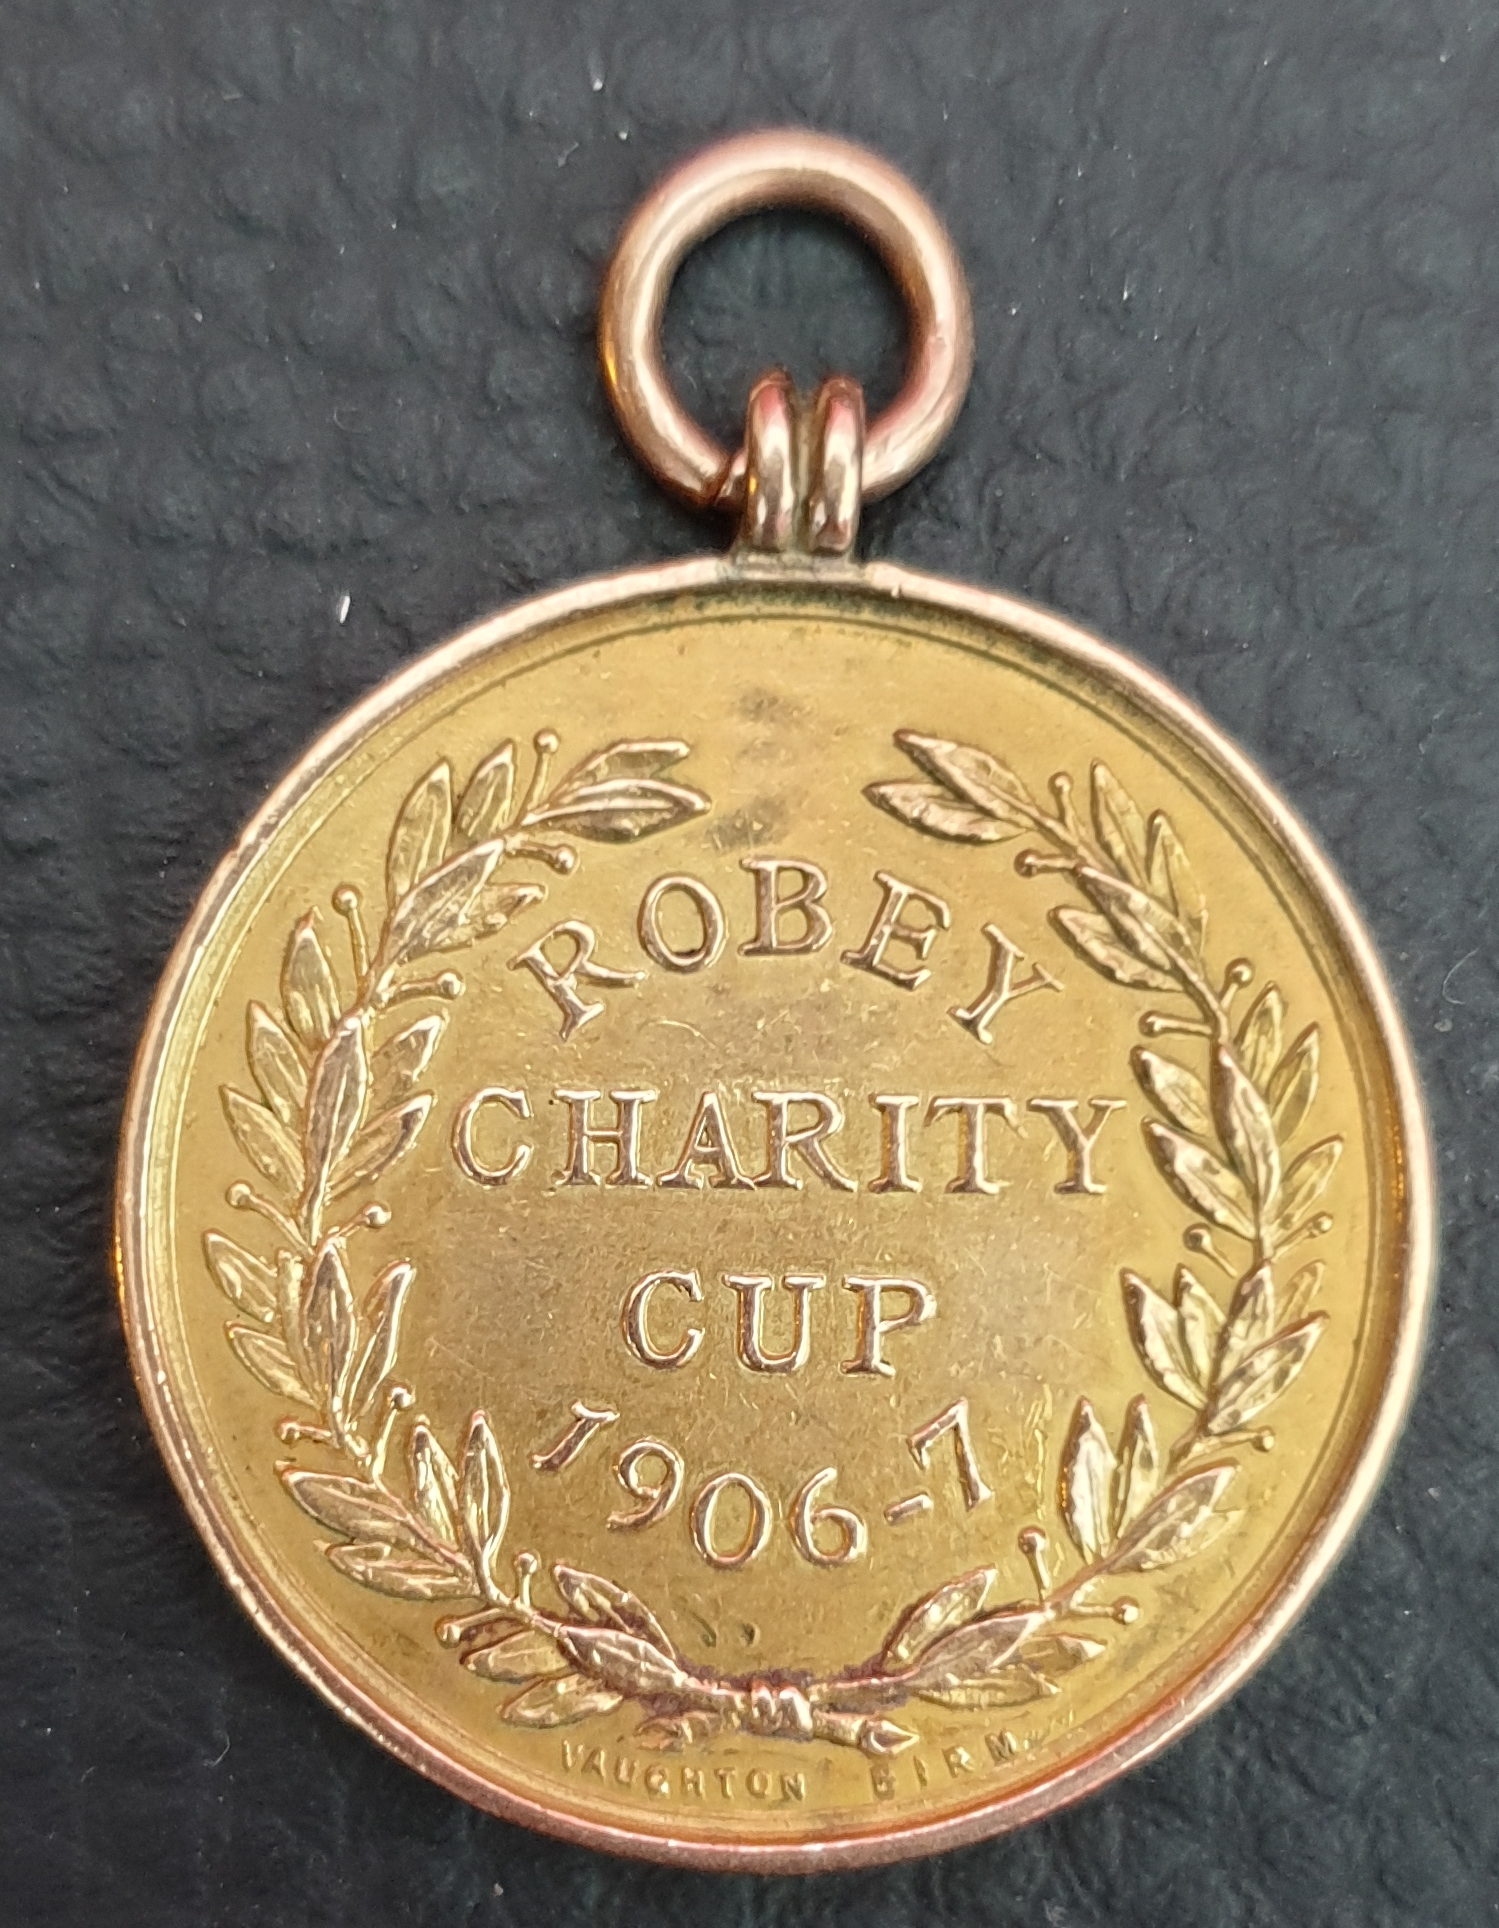 Robey Charity Cup 1907